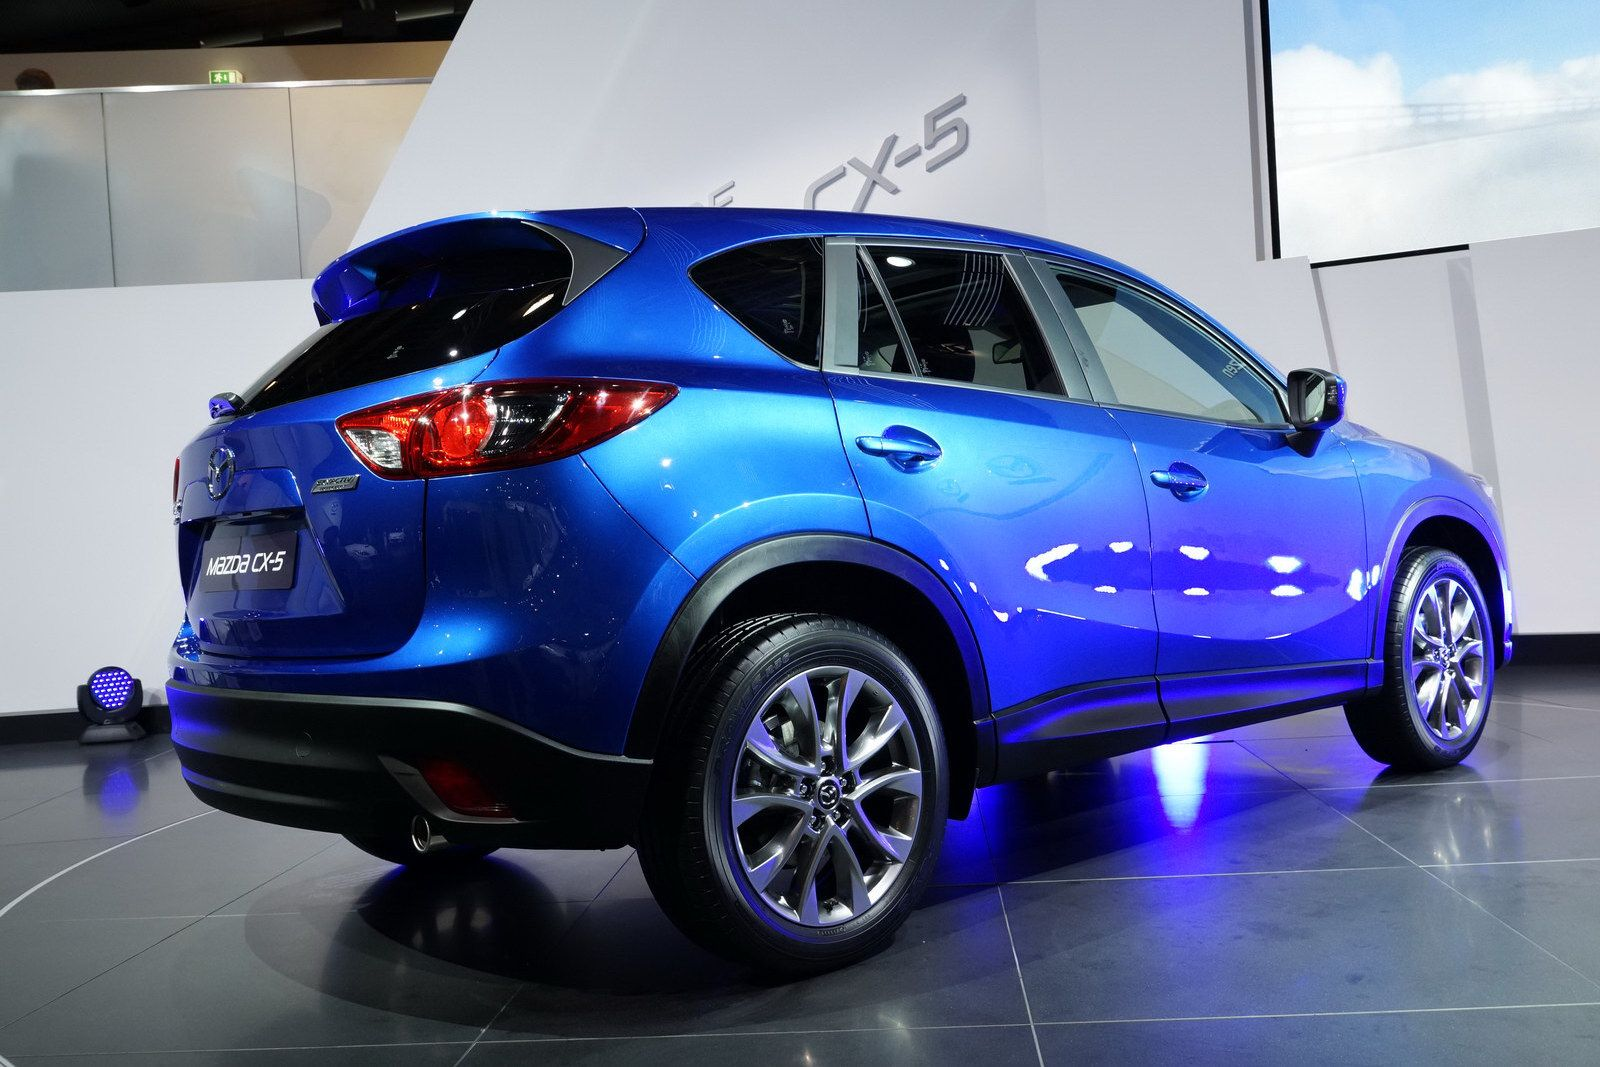 2012 Mazda CX5 Back View Cars Wallpapers